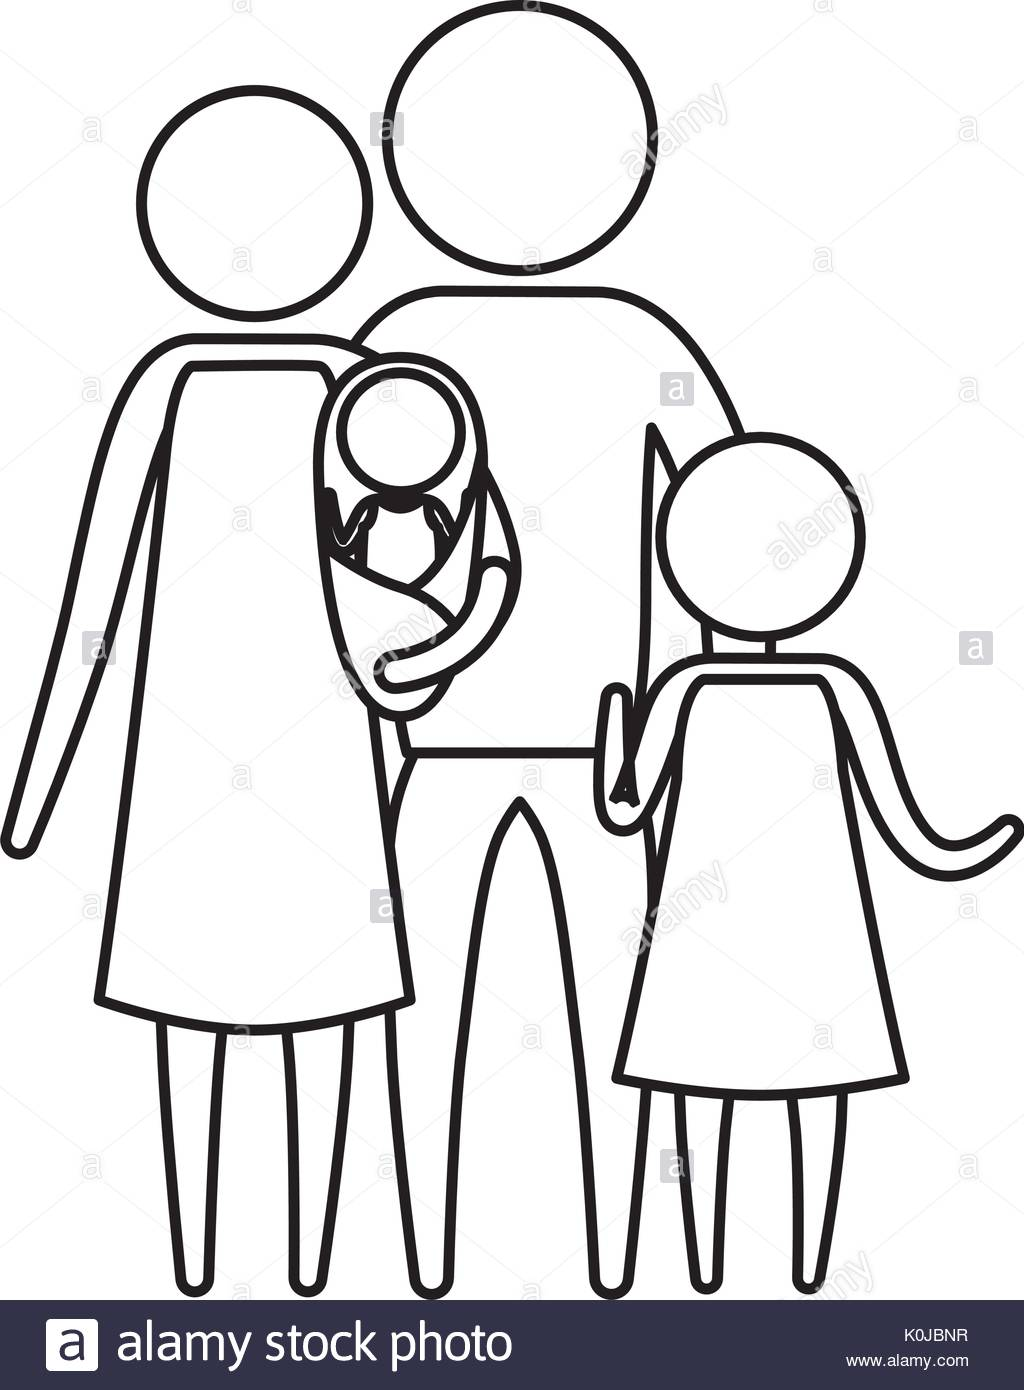 1024x1390 Sketch Silhouette Of Pictogram Parents With A Baby And Little Girl